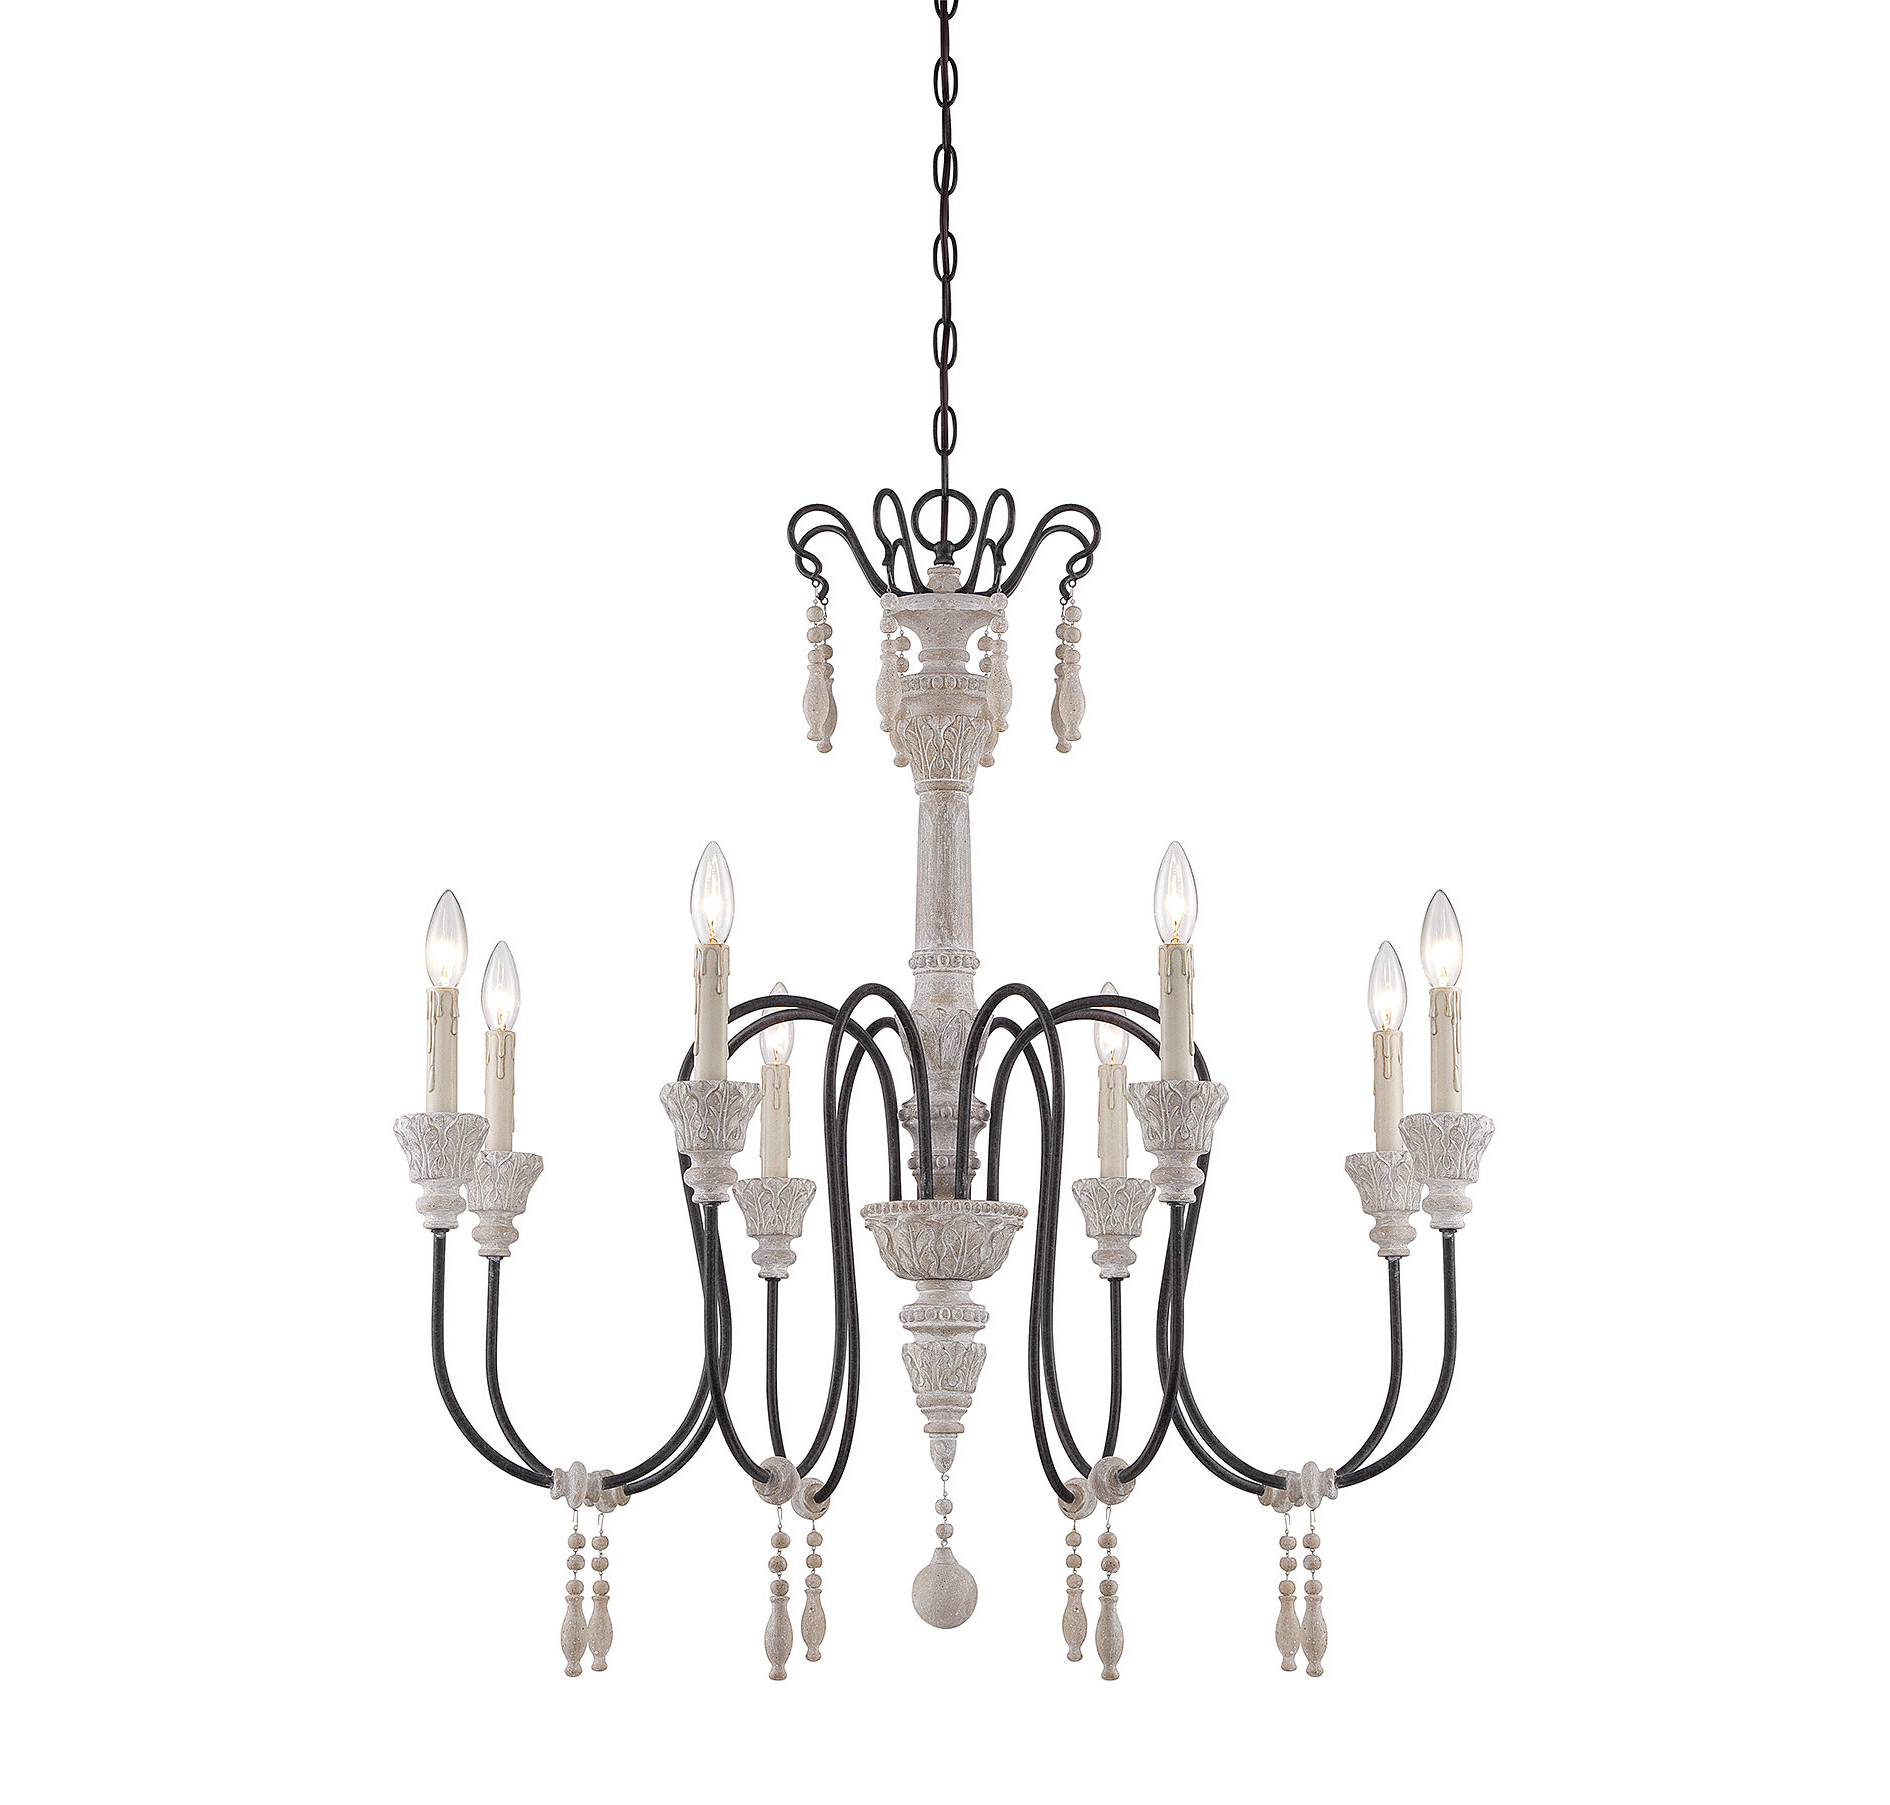 Ailsa 8 Light Candle Style Chandelier Within Newest Armande Candle Style Chandeliers (View 7 of 25)